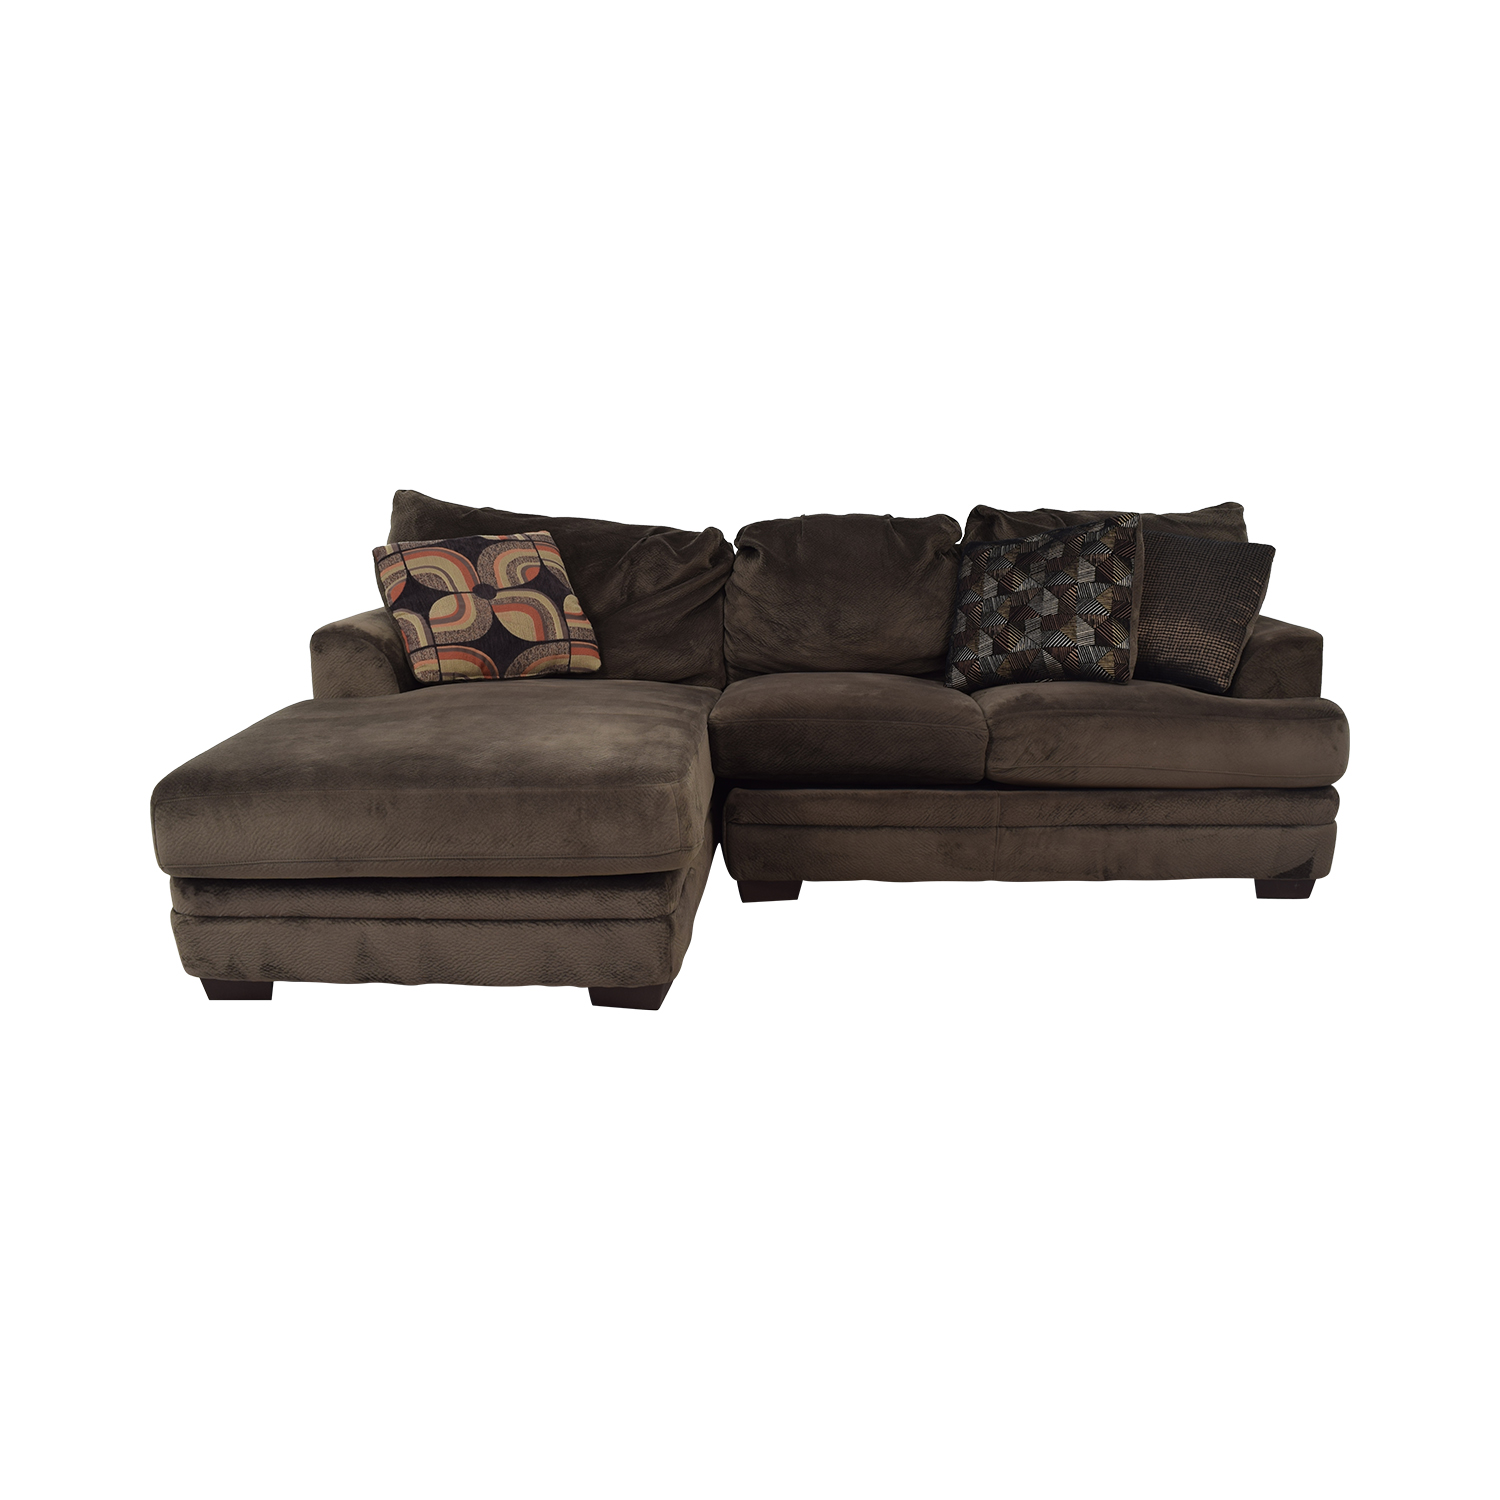 Macy's Mocha Sectional Couch / Sectionals